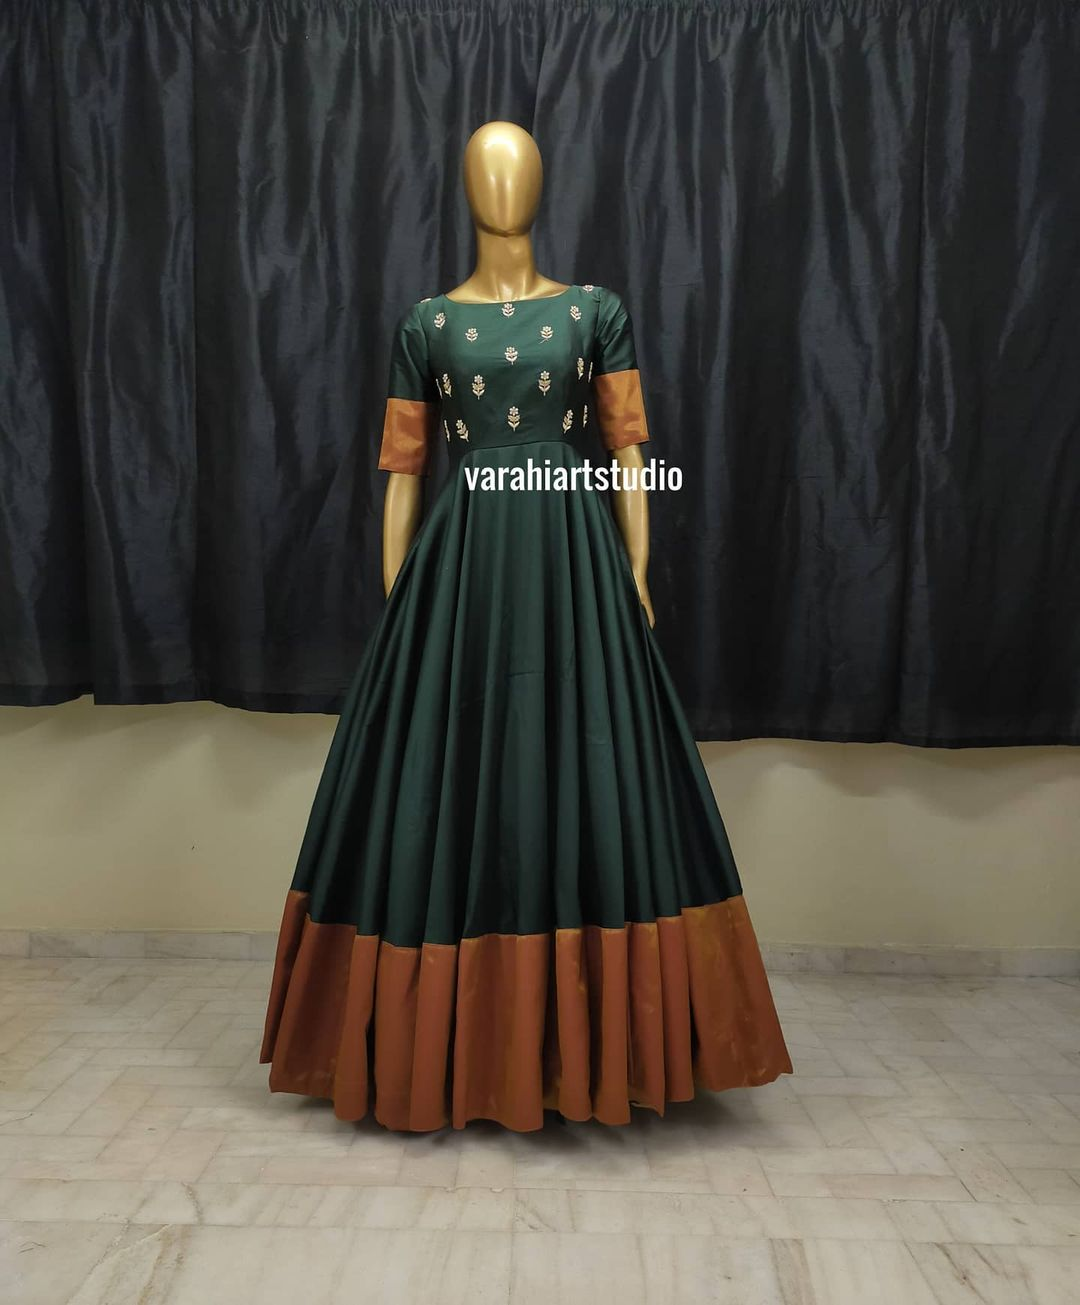 This Outfit is Available Rs5200 from Varahi art studio .. They can customise the size as per your Measurements .. .. They have international shipping service too